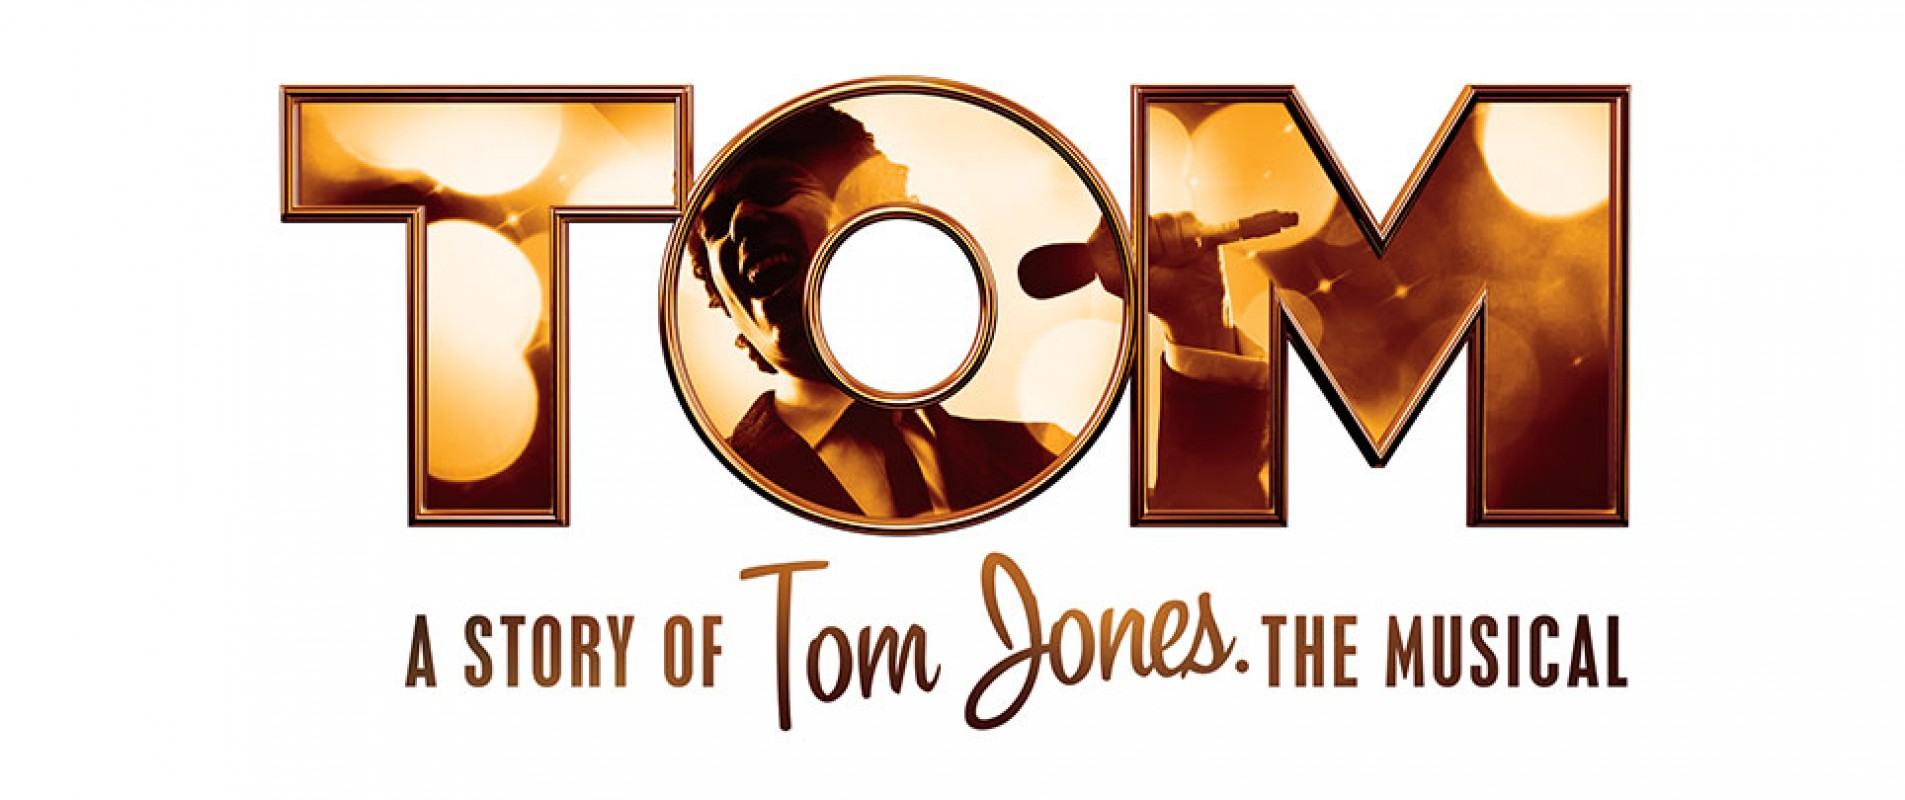 The Story of Tom Jones